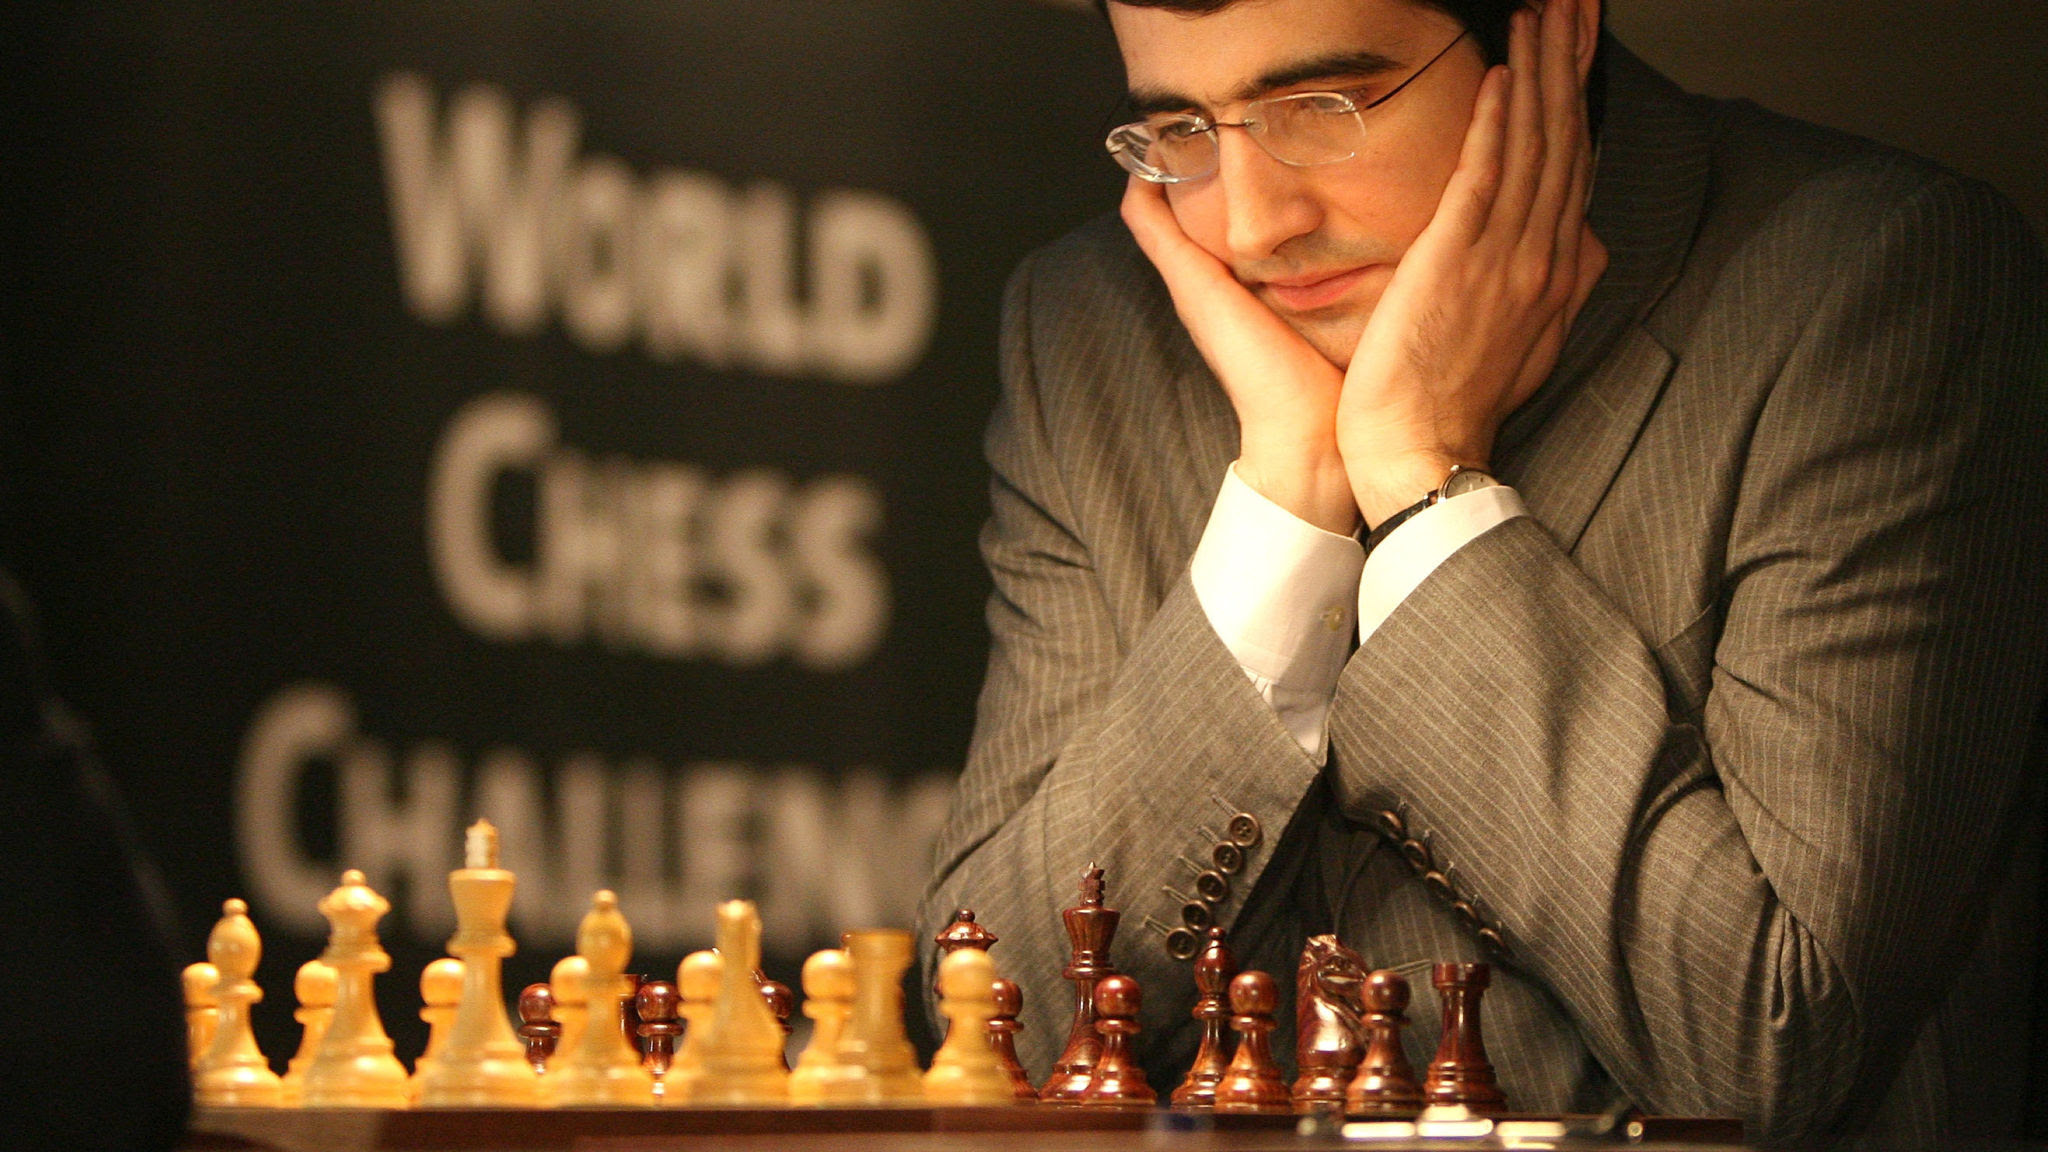 Checkmate Former Chess Champion Vladimir Kramnik To Retire